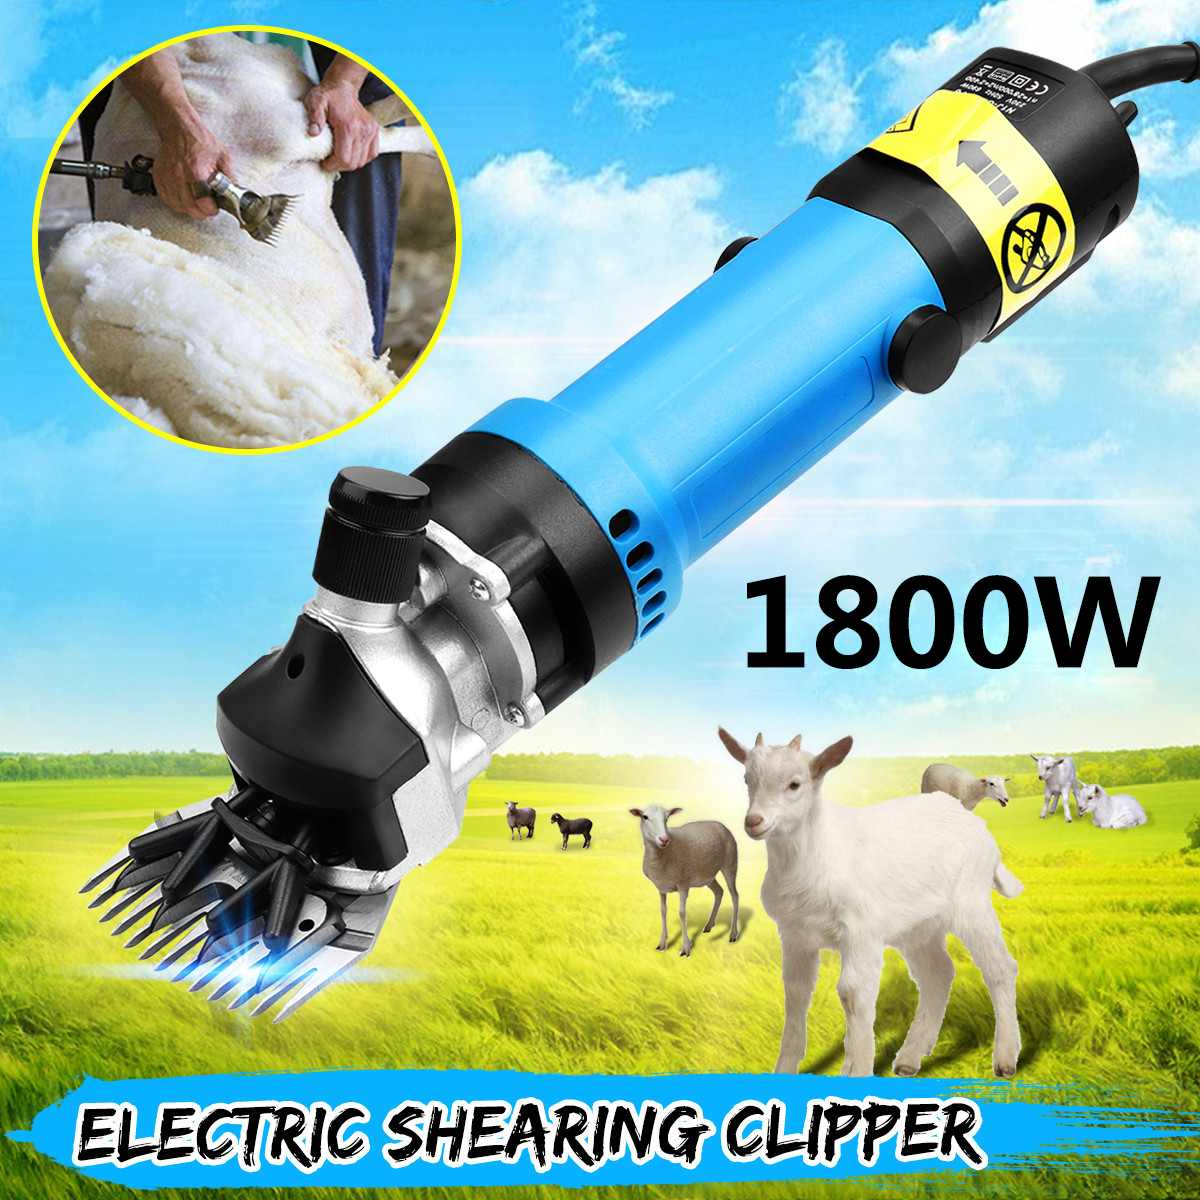 1800W 220V Flexible Shaft Electric Sheep Goat Pruning Shearing Machine Clipper Shears Cutter Wool Scissor 6 Speed Adjustable